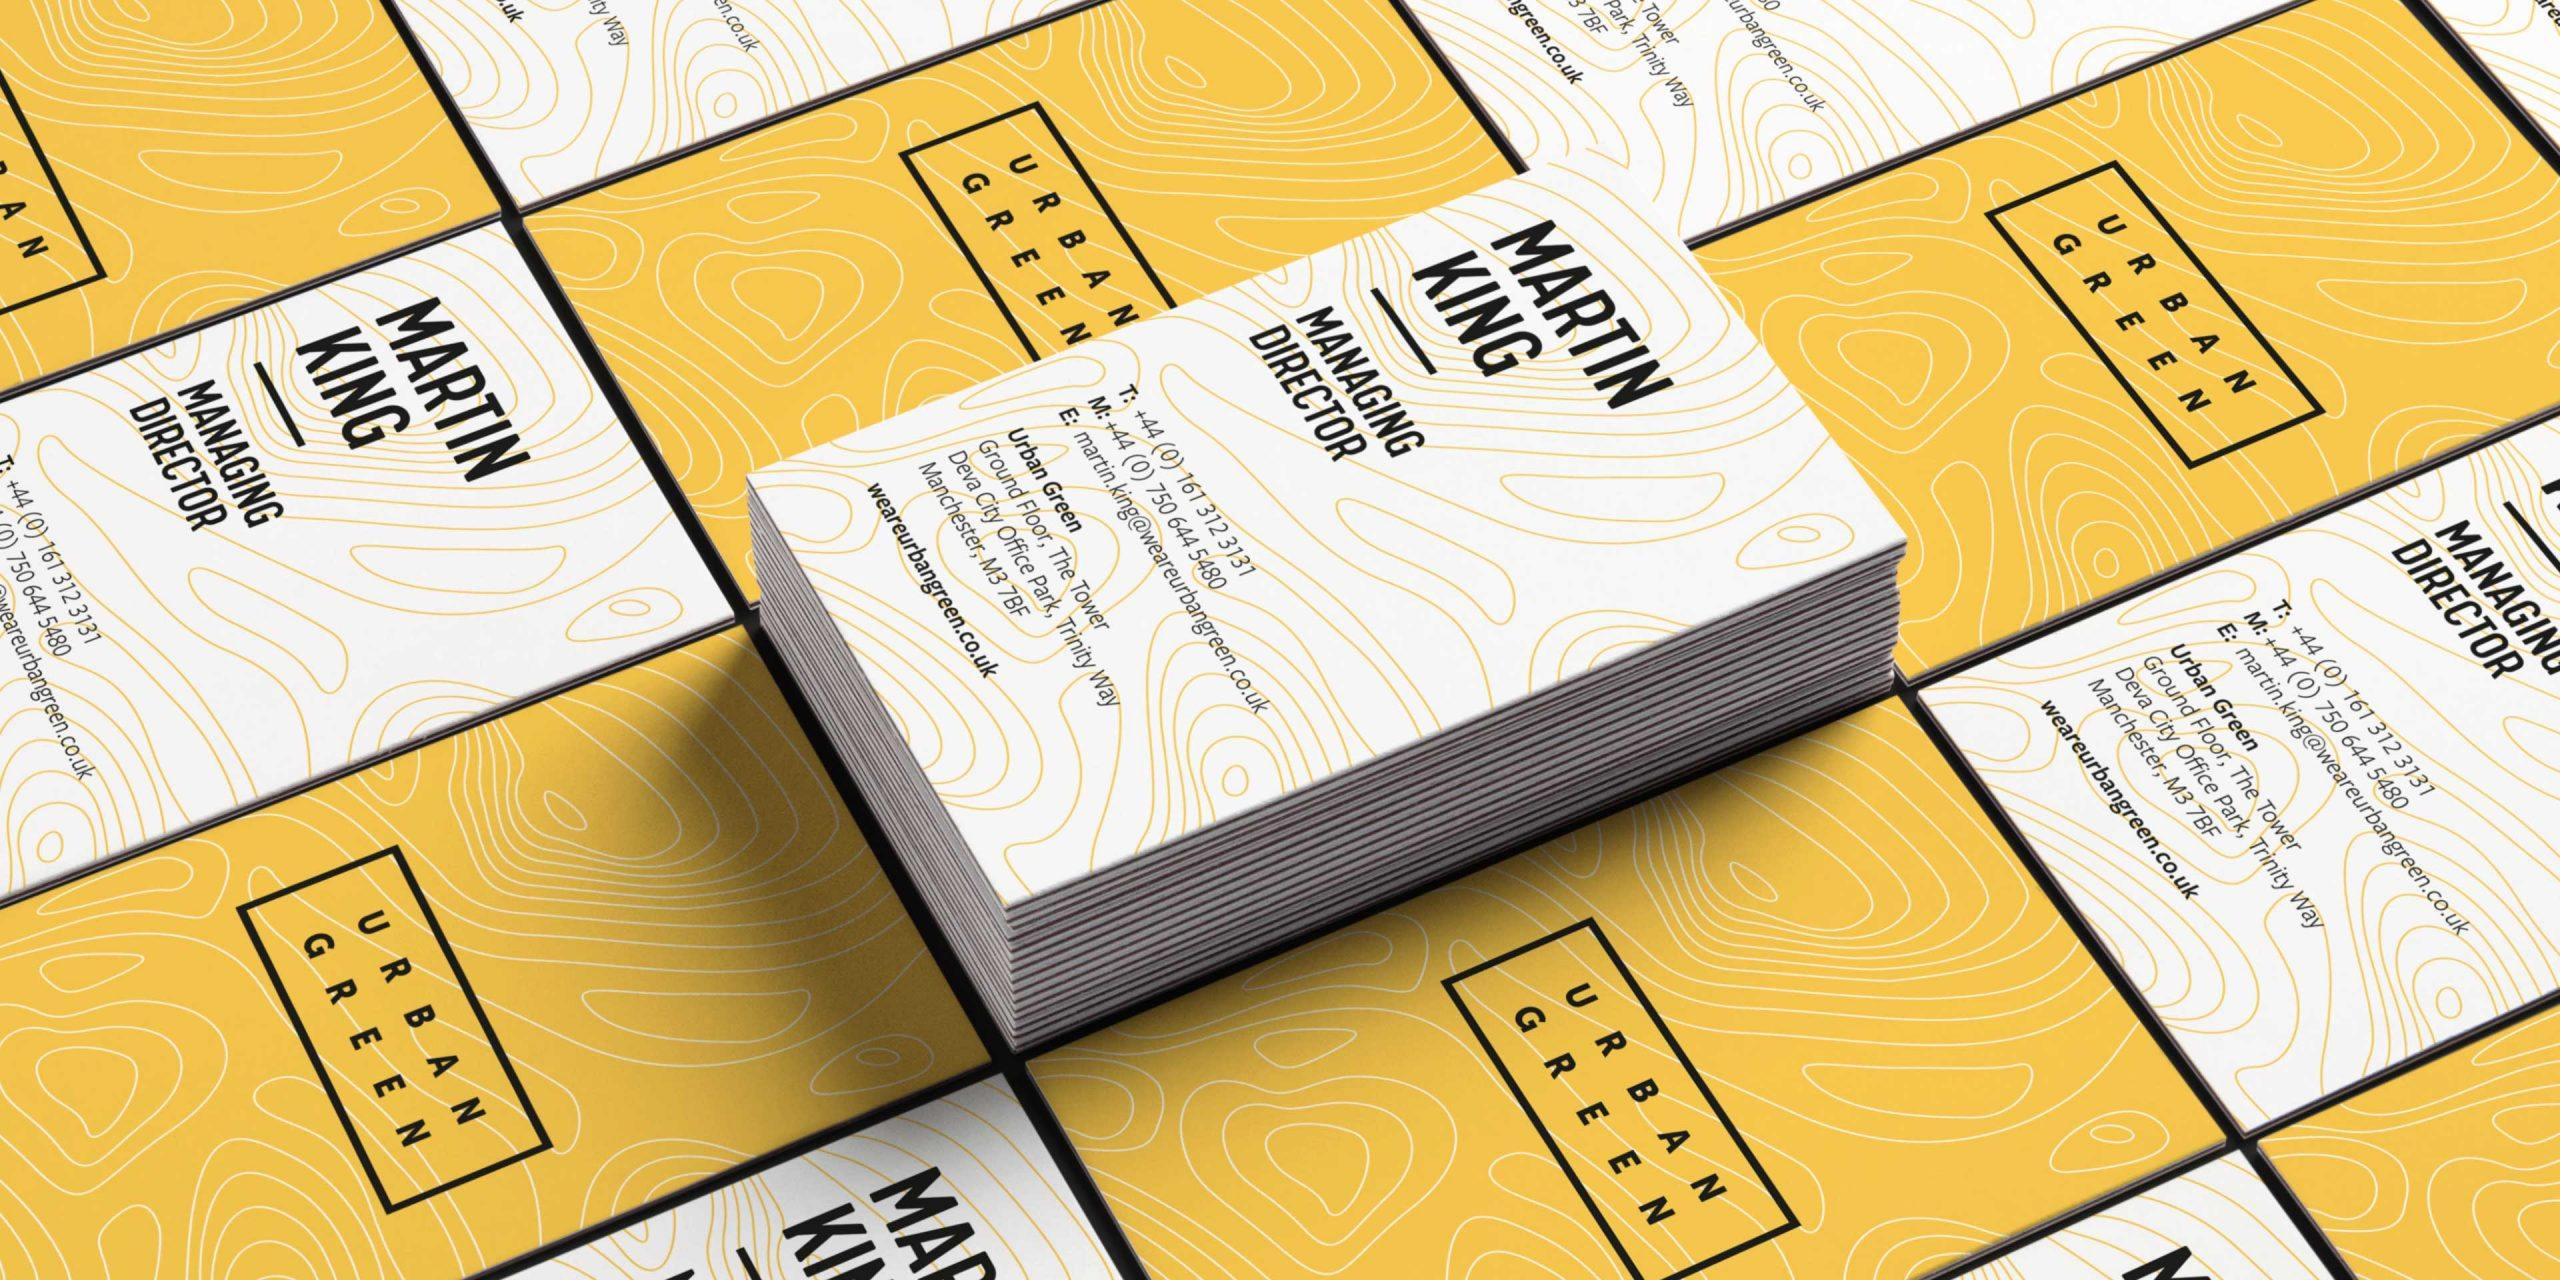 Business cards for Urban Green representing the rebrand for the organisation – bold black type against colourful sandy yellow contours representing the landscape as most of their work relates closely with landscape.